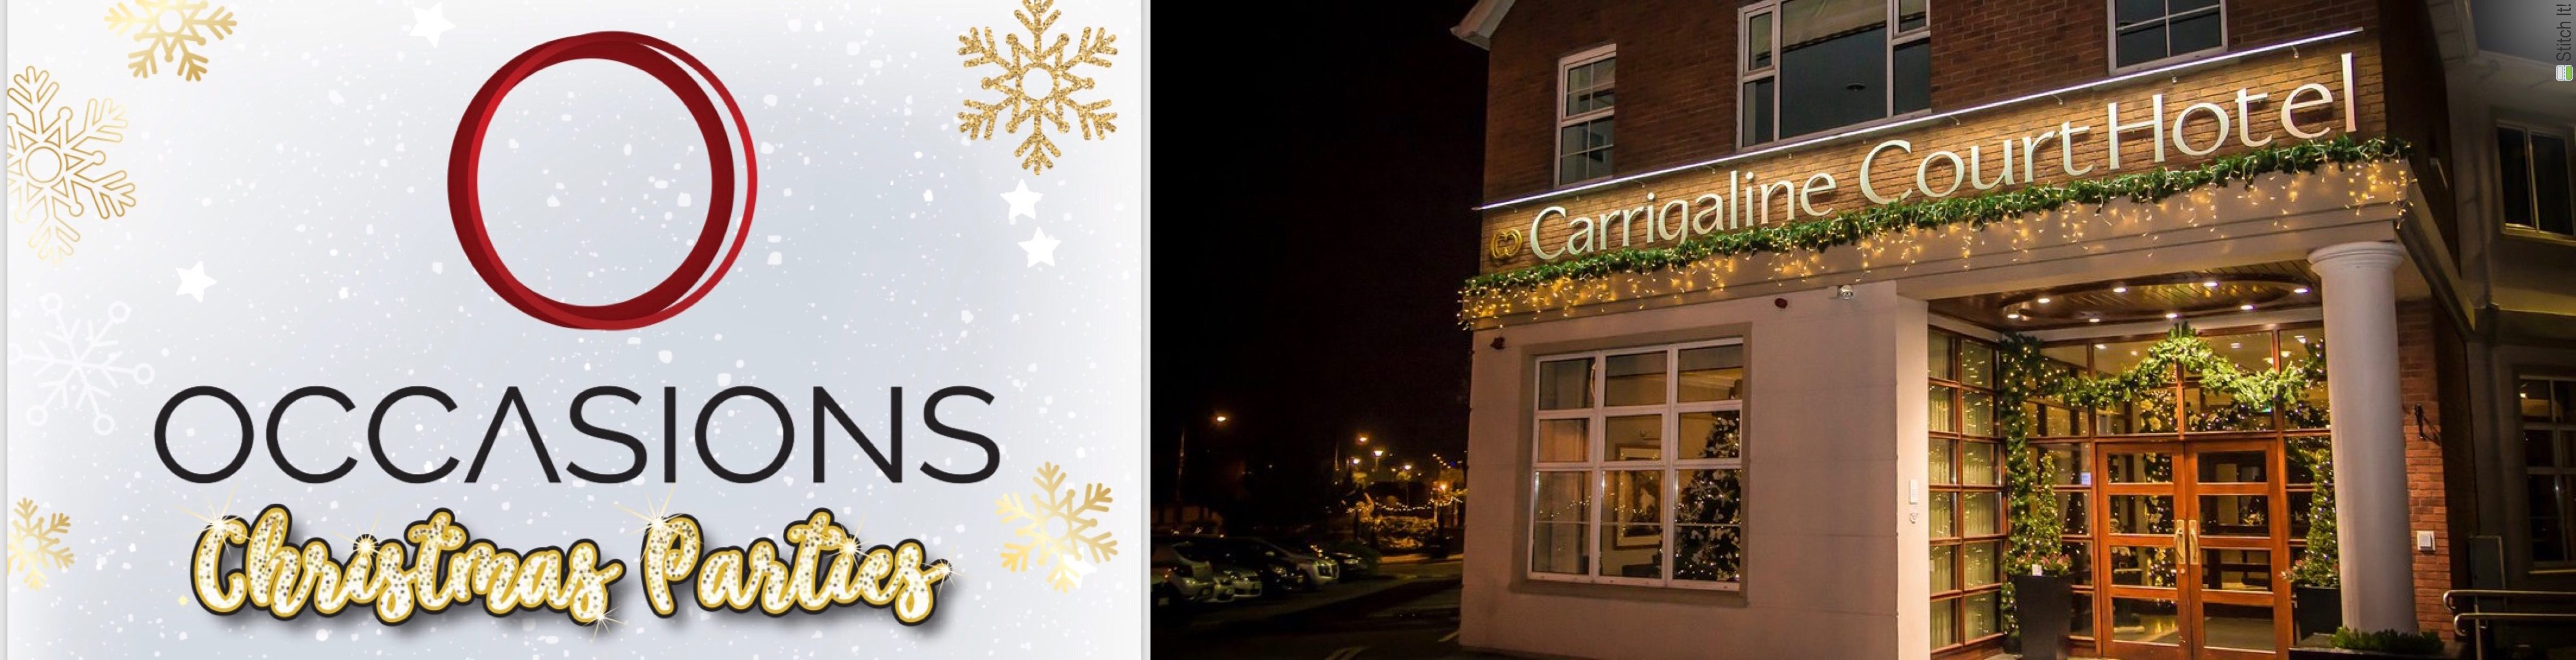 Occasions Christmas Parties - Carrigaline Court Hotel